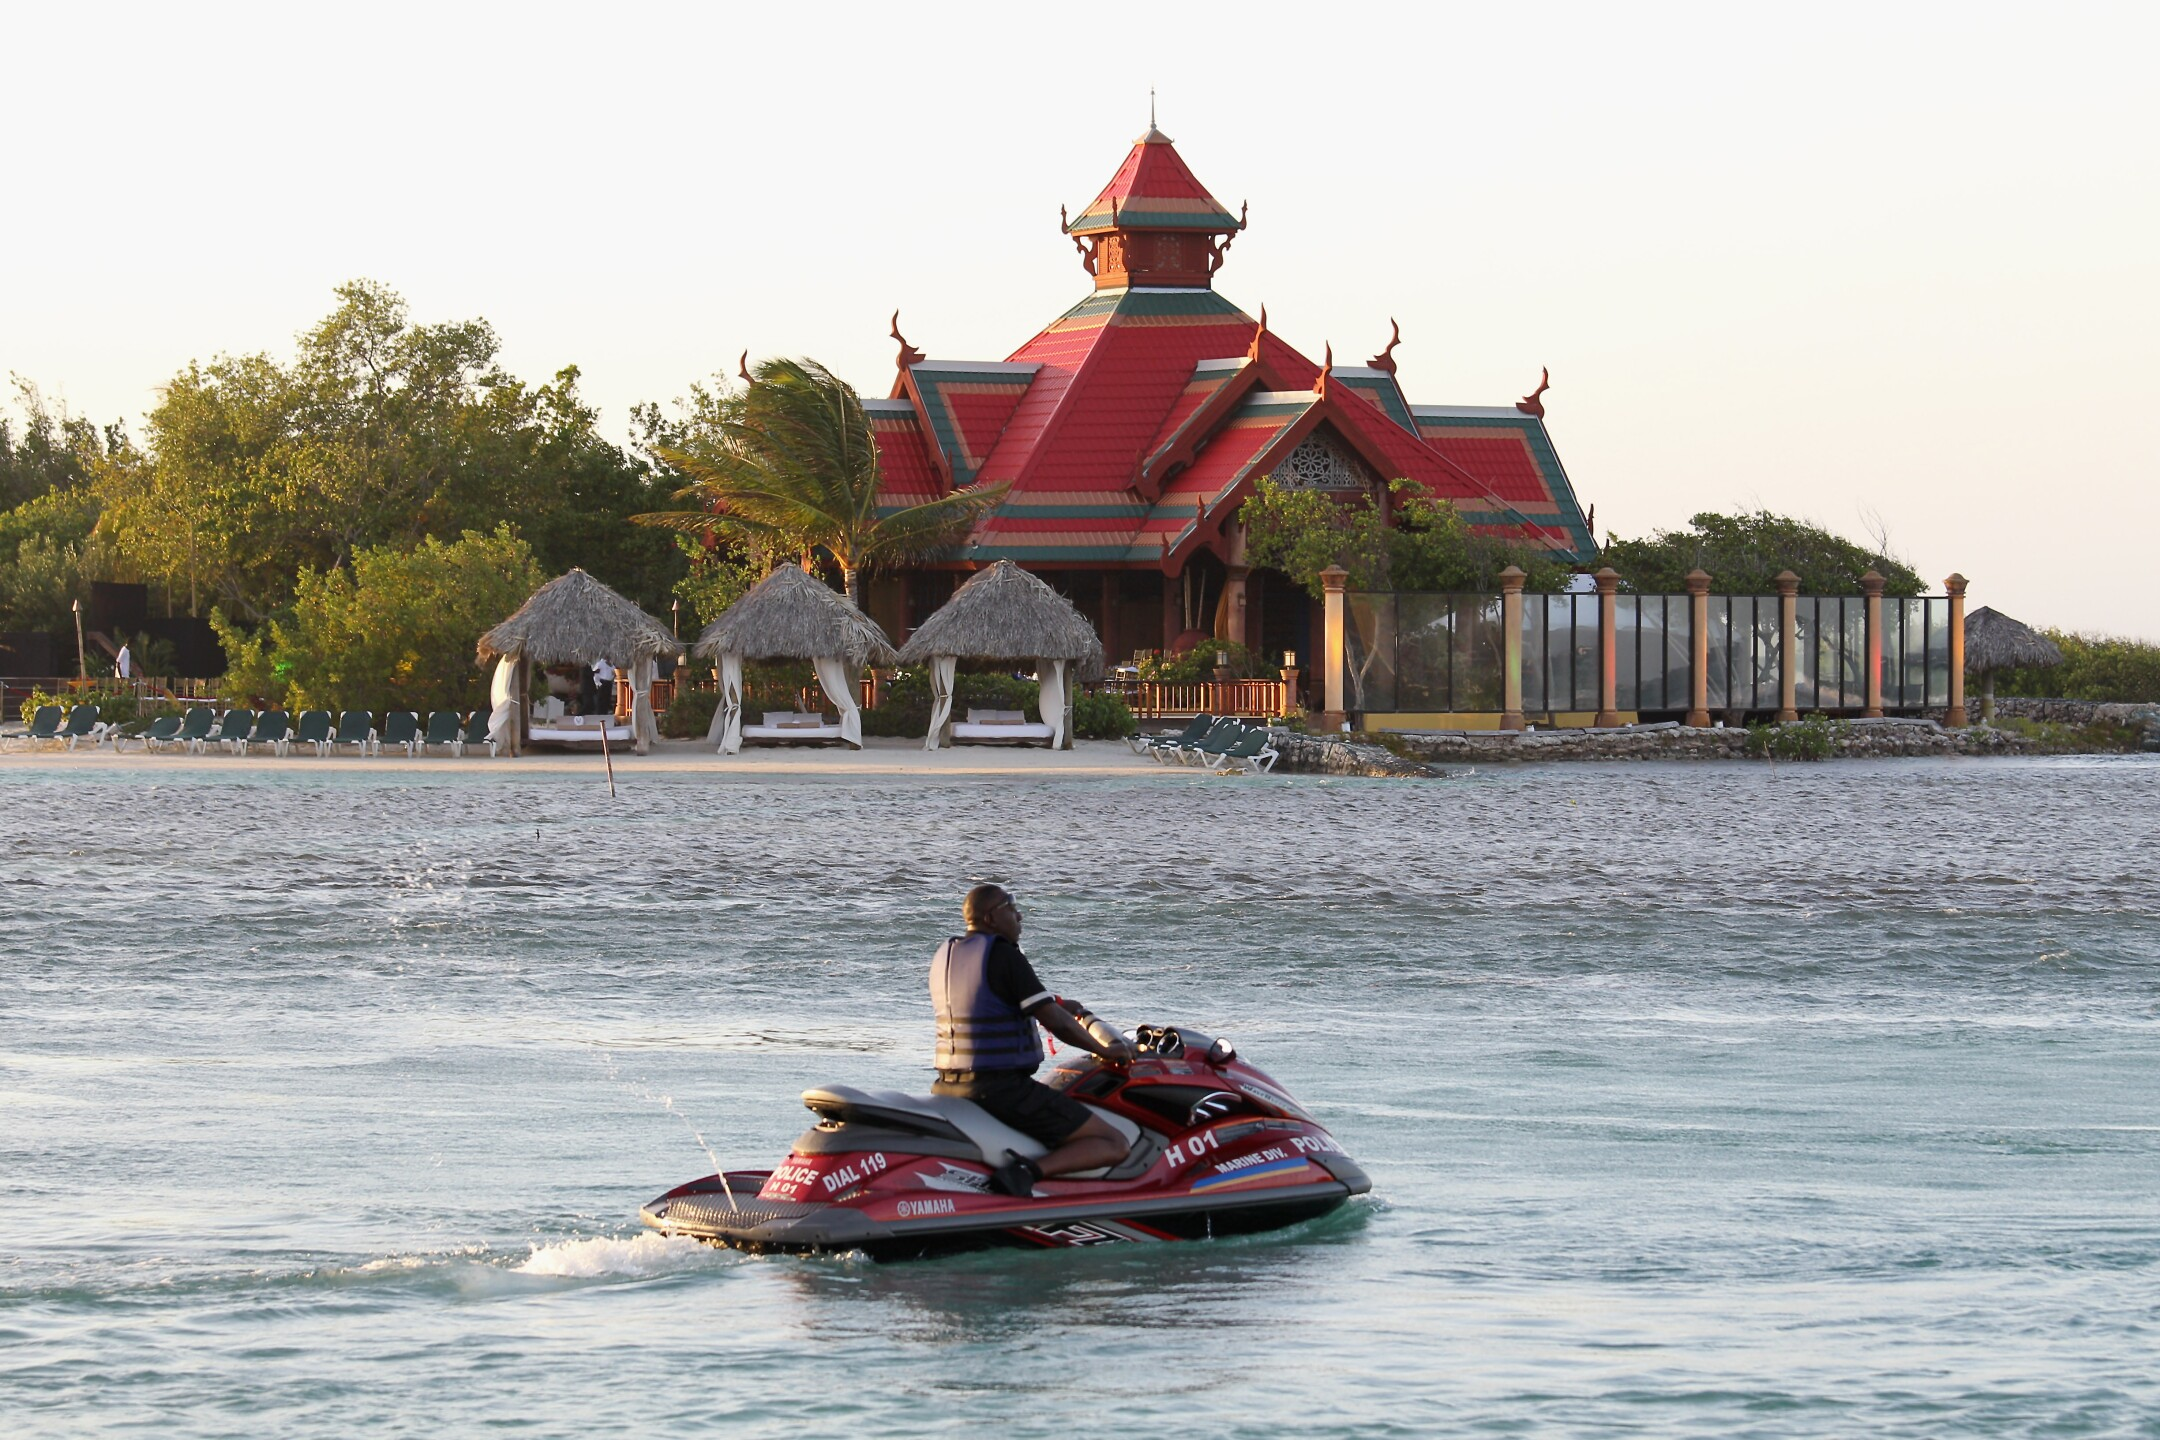 Jet ski in Montego Bay